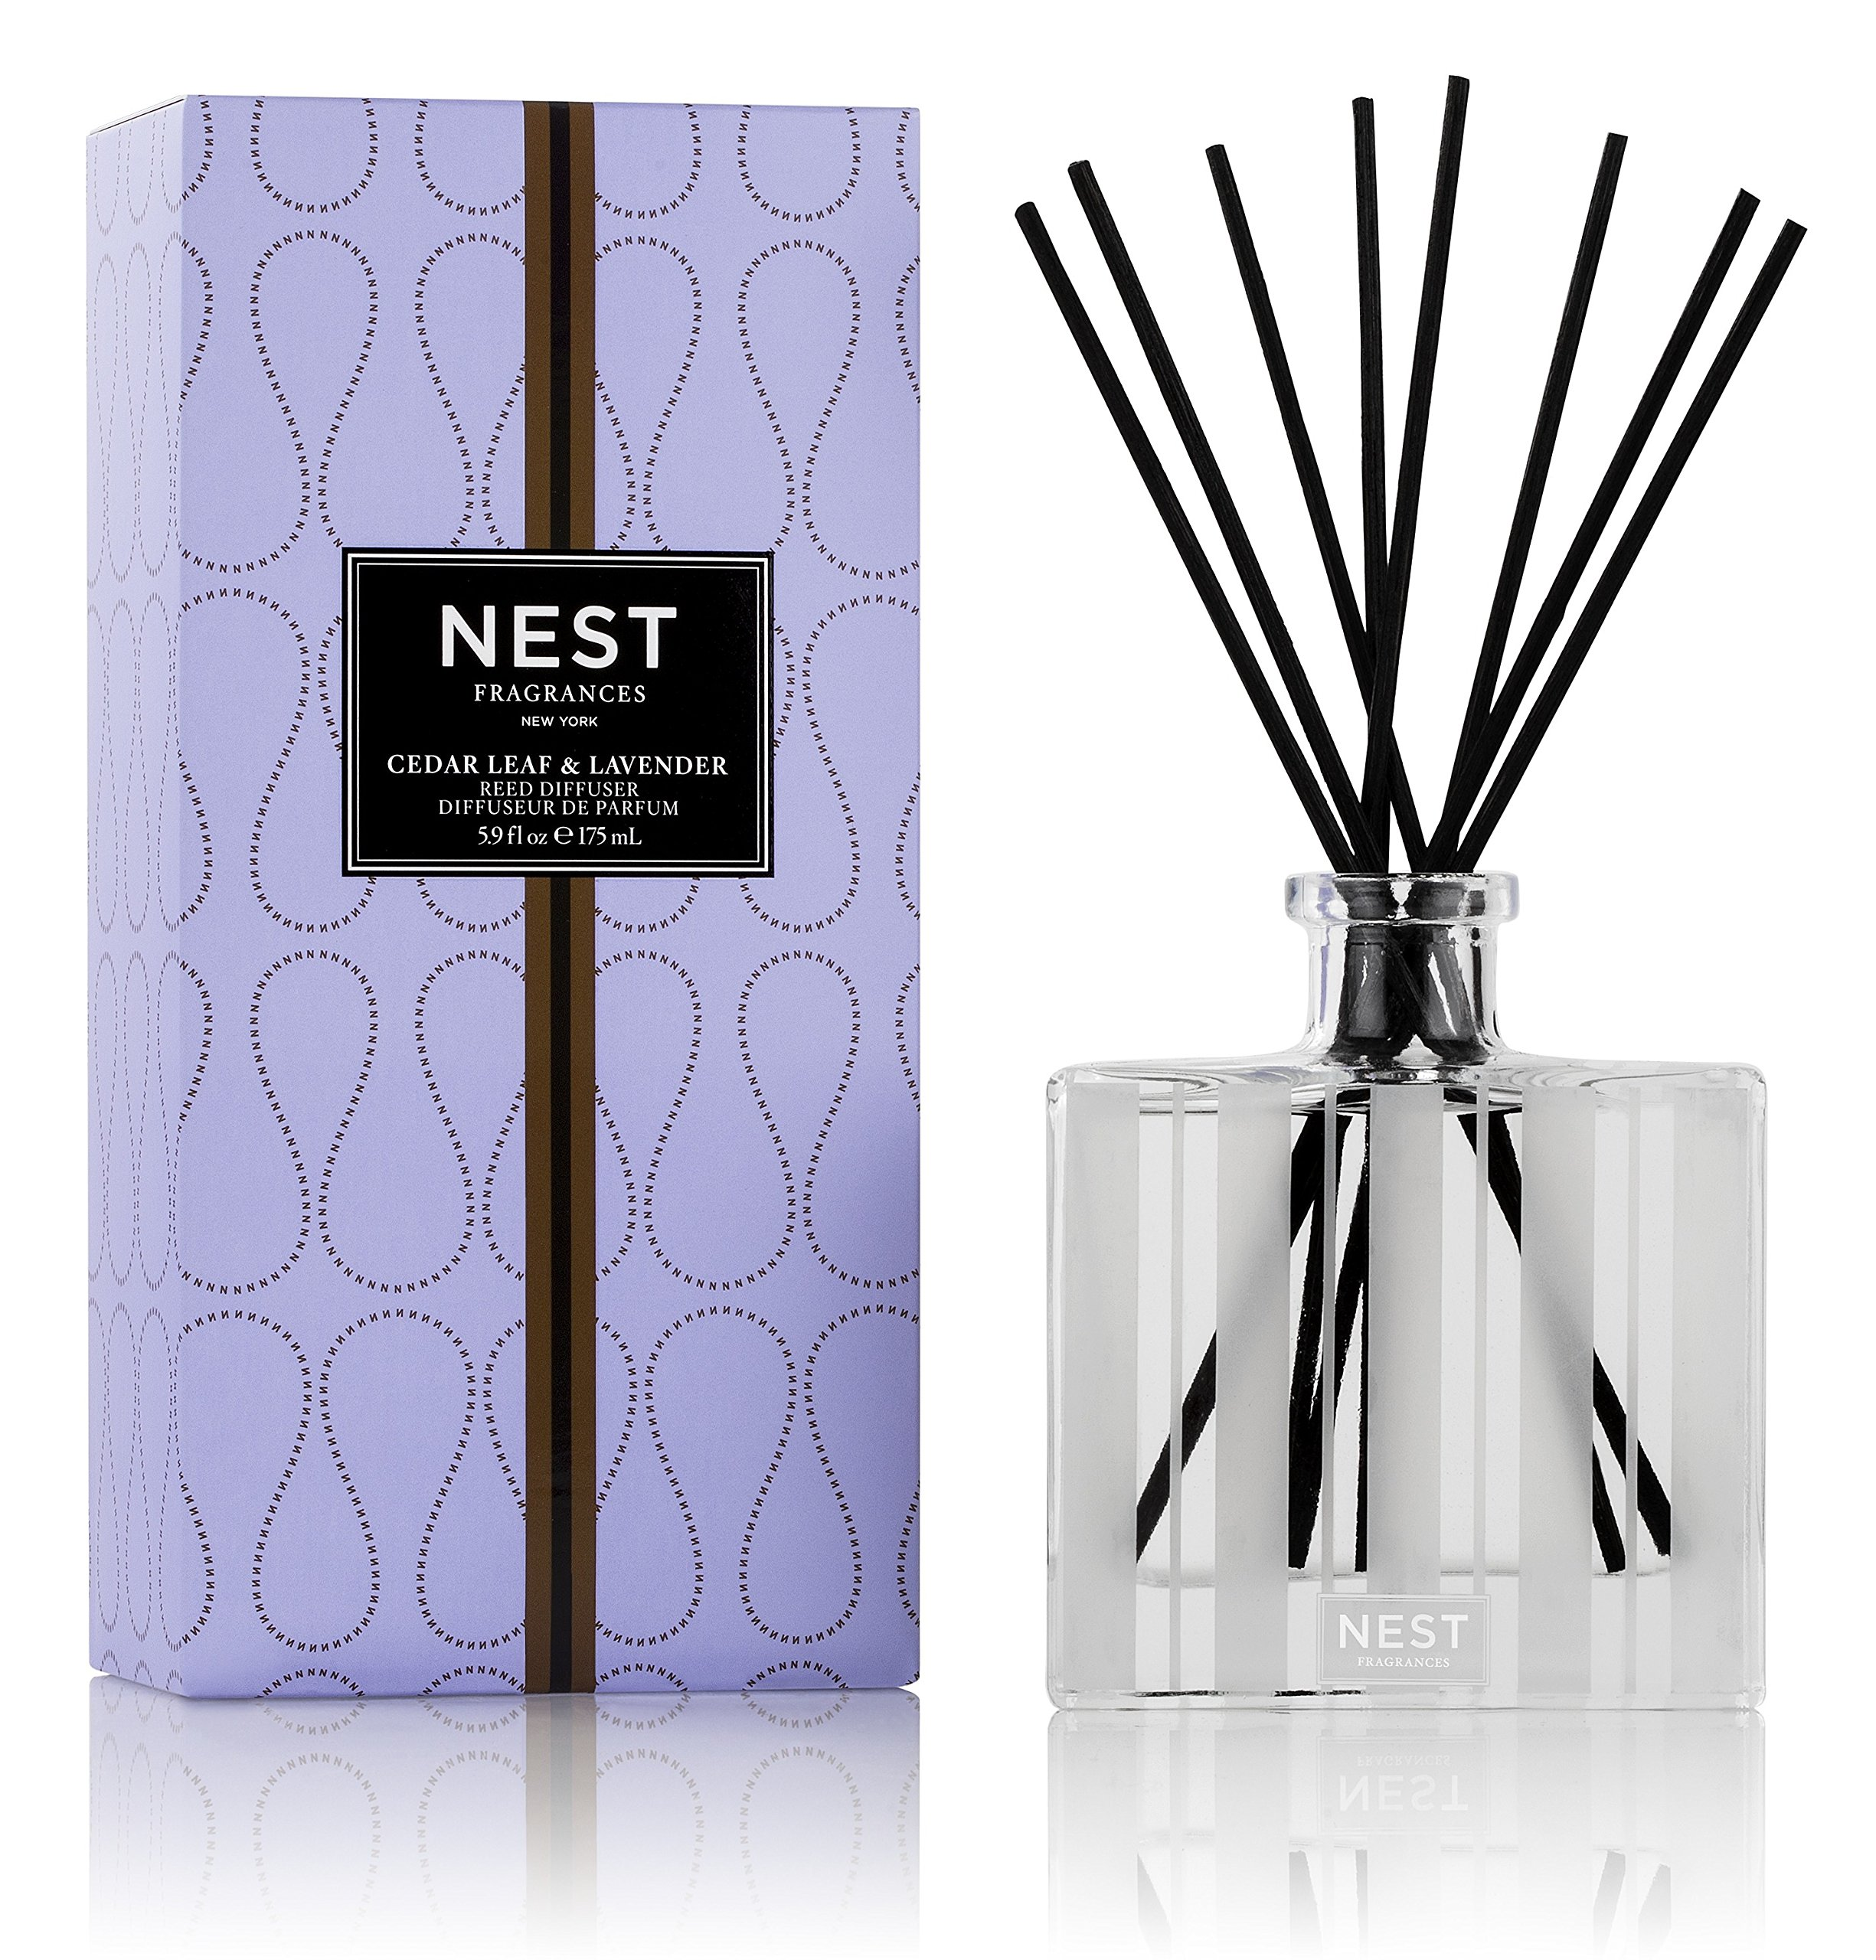 NEST Fragrances Reed Diffuser- Cedar Leaf & Lavender, 5.9 fl oz